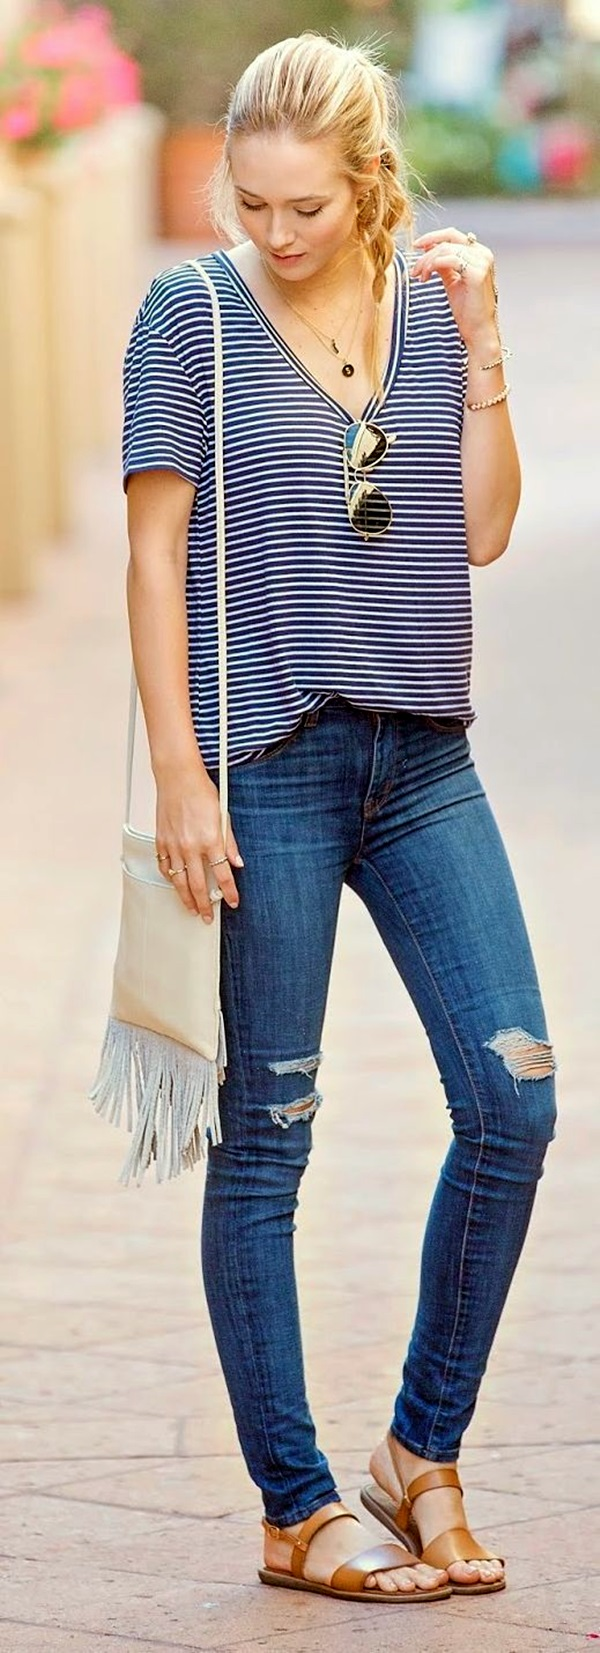 Ripped Jeans outfit ideas (26)